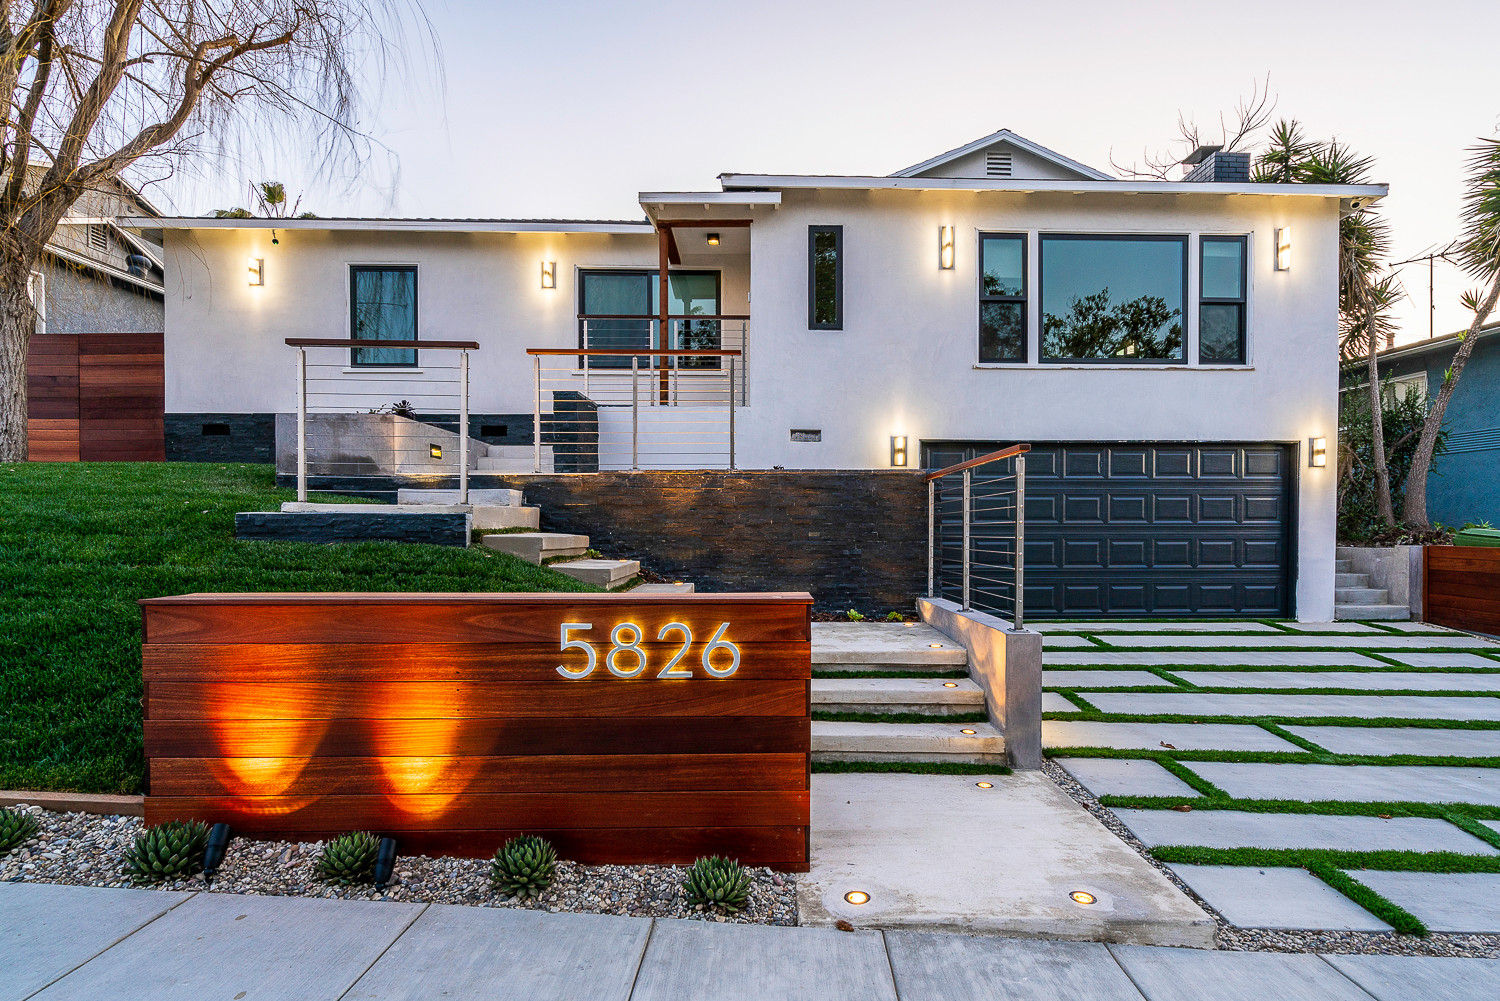 Home Exterior Remodel in Los Angeles.jpg